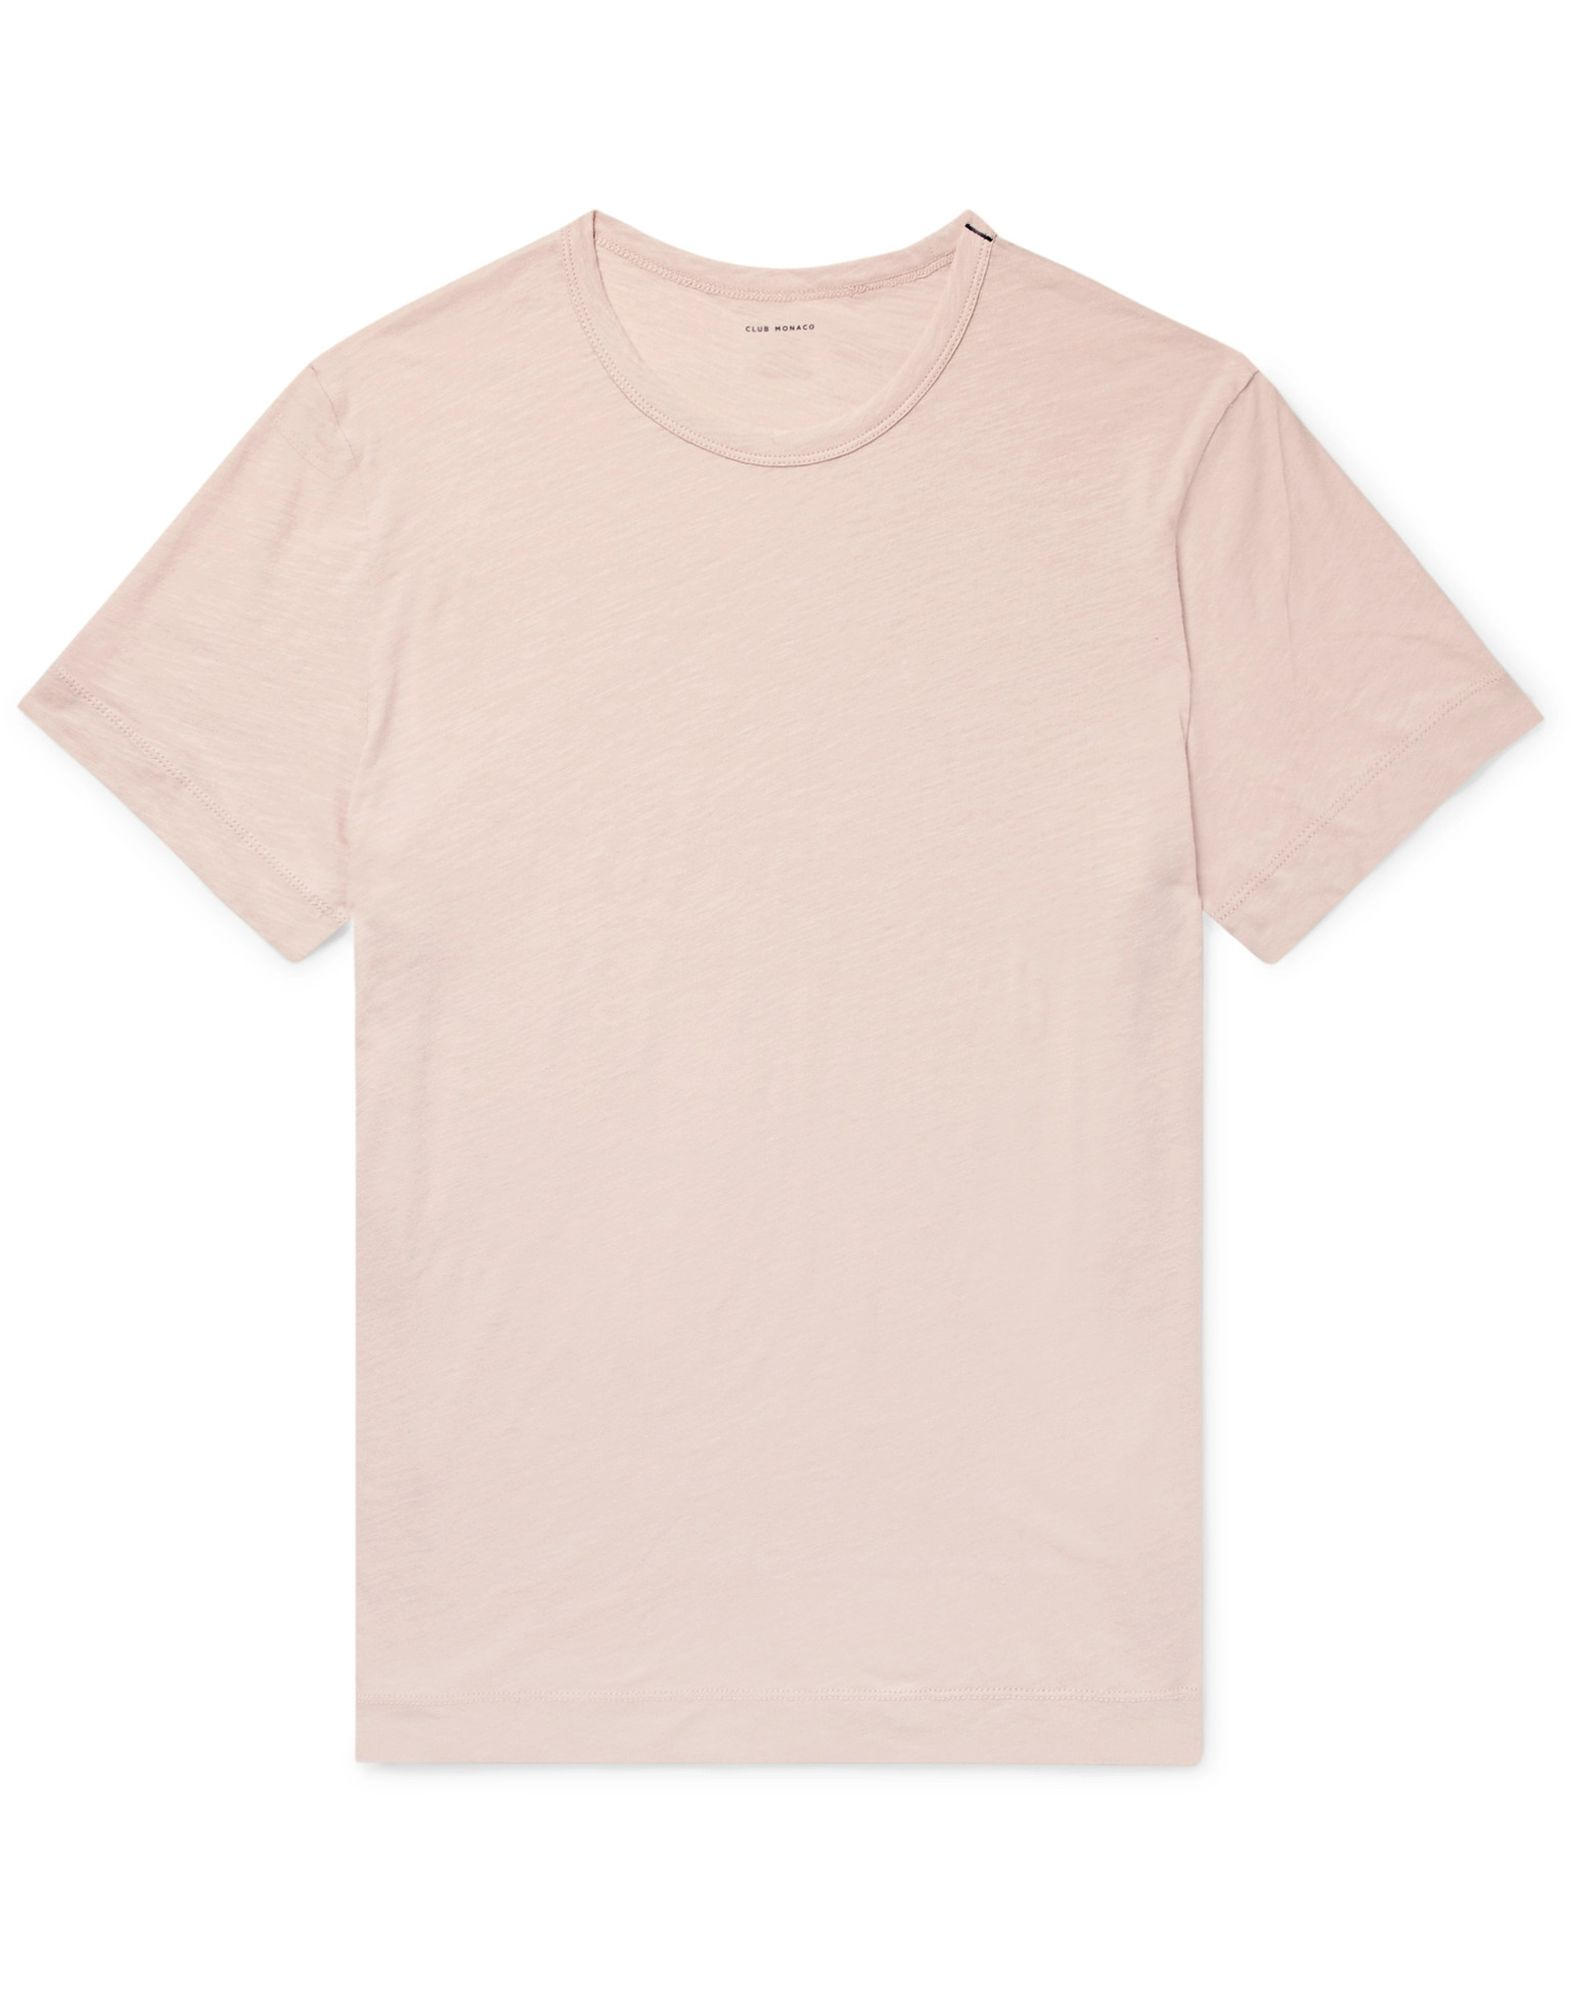 CLUB MONACO T-shirts. jersey, no appliqués, basic solid color, round collar, short sleeves, no pockets. 100% Cotton